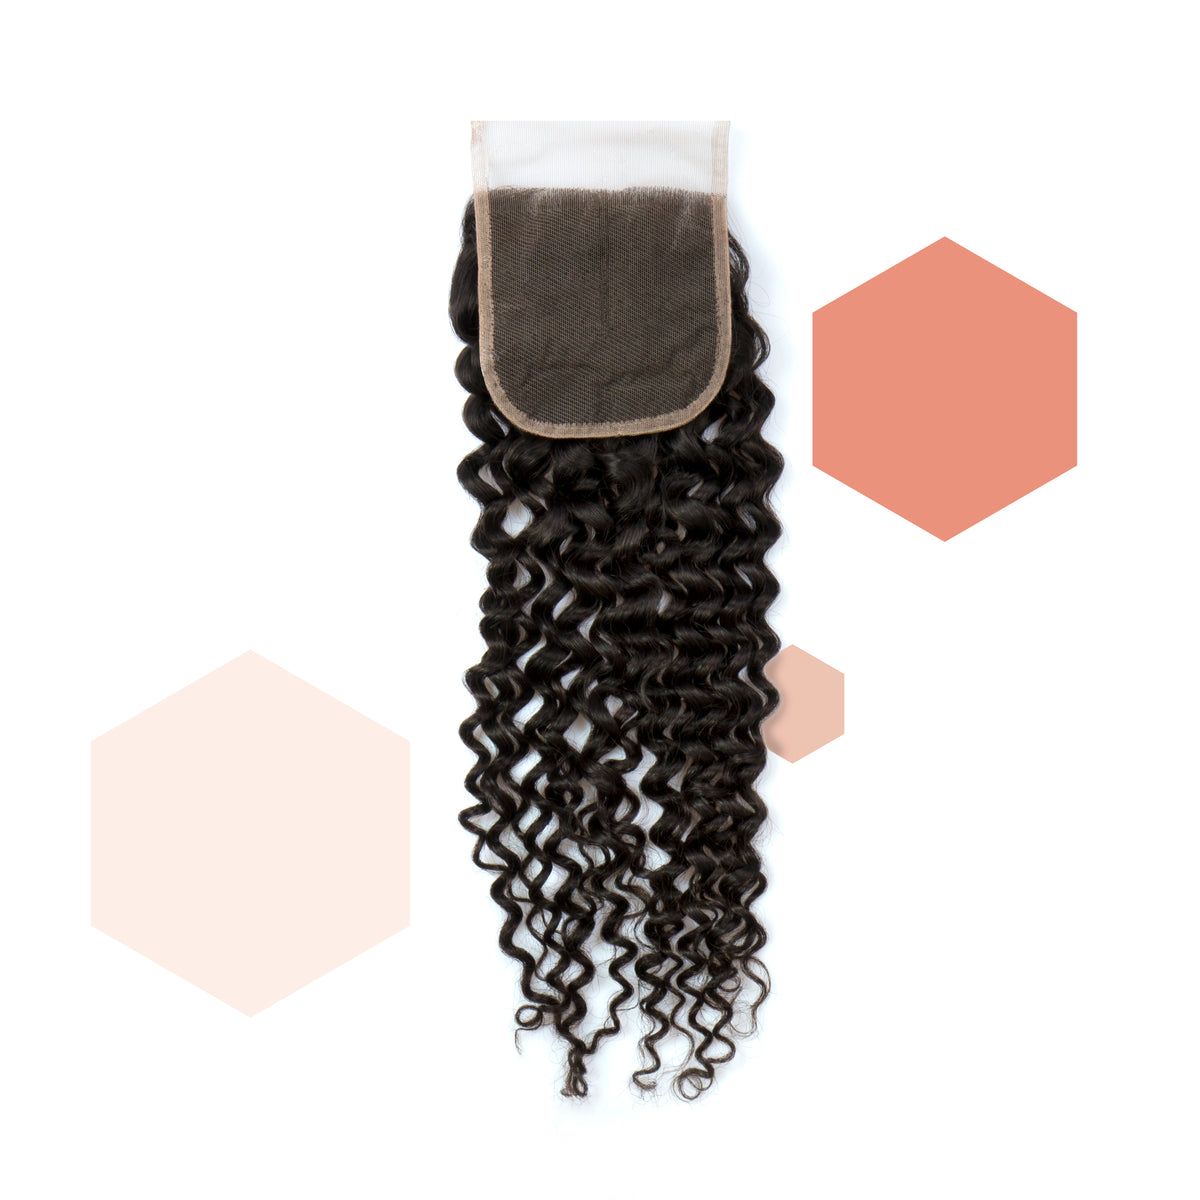 Parting-of-your-choice Brazilian Curly Lace Closure